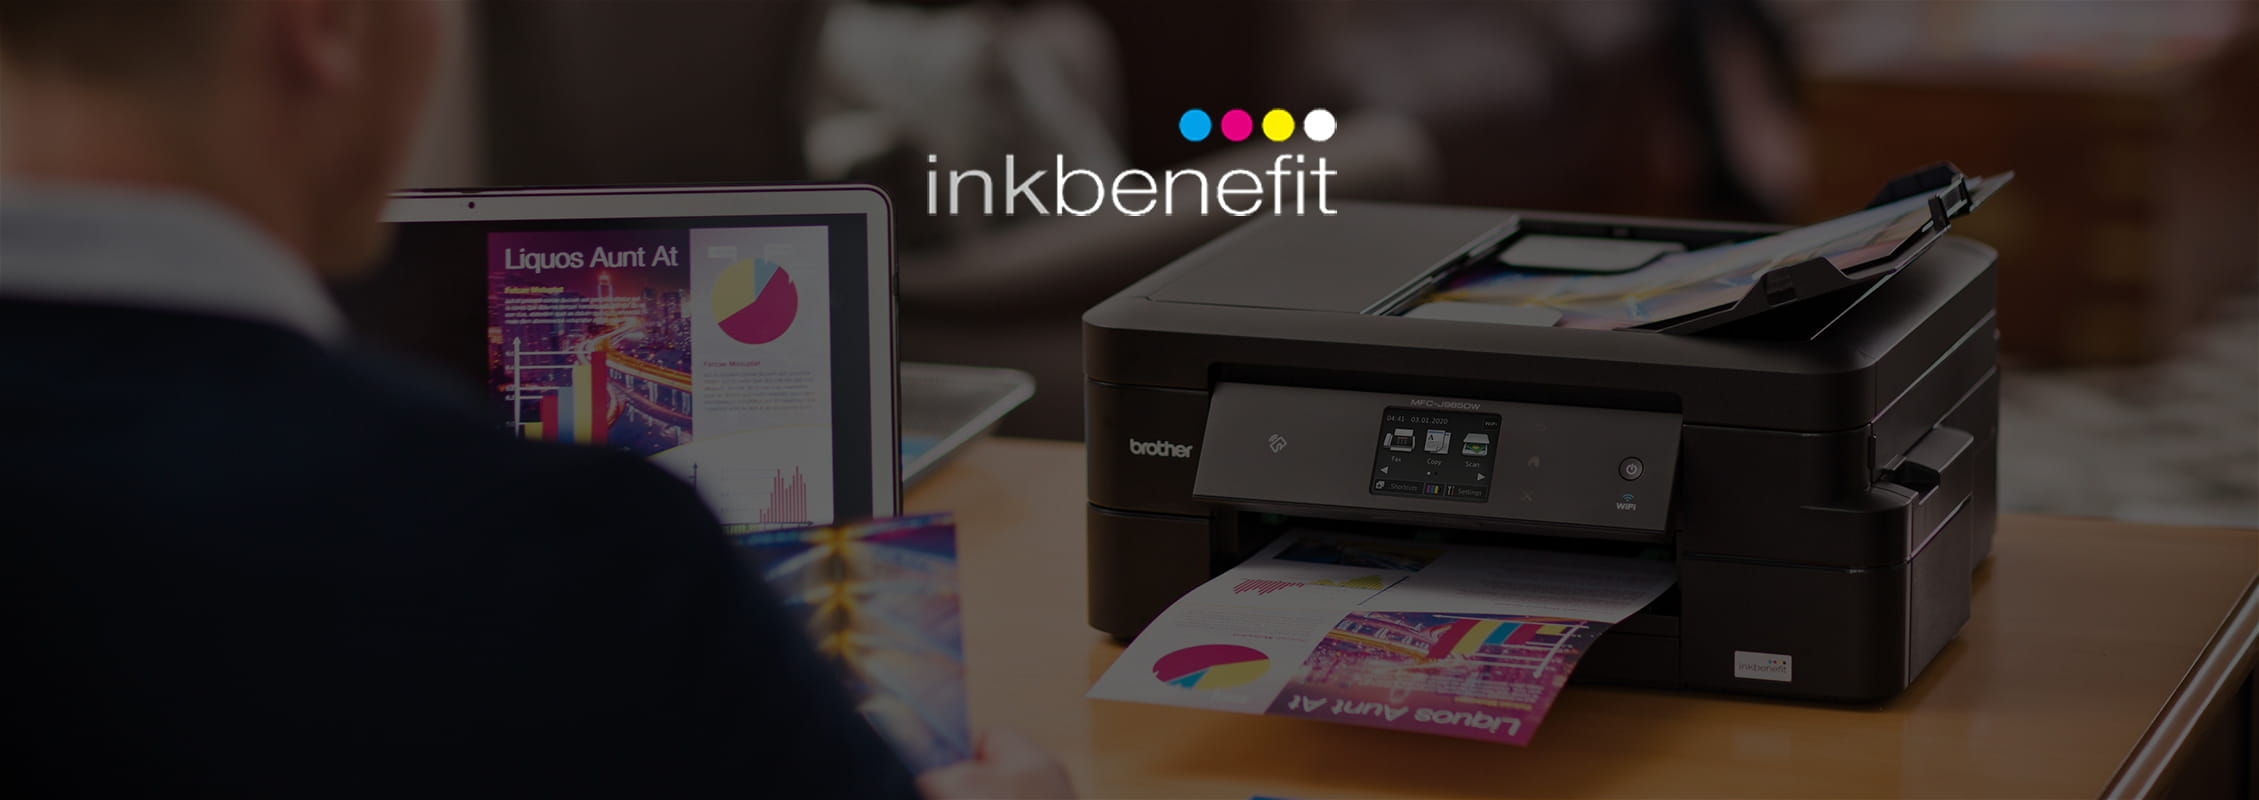 Inkbenefit logo with Brother printer in the background